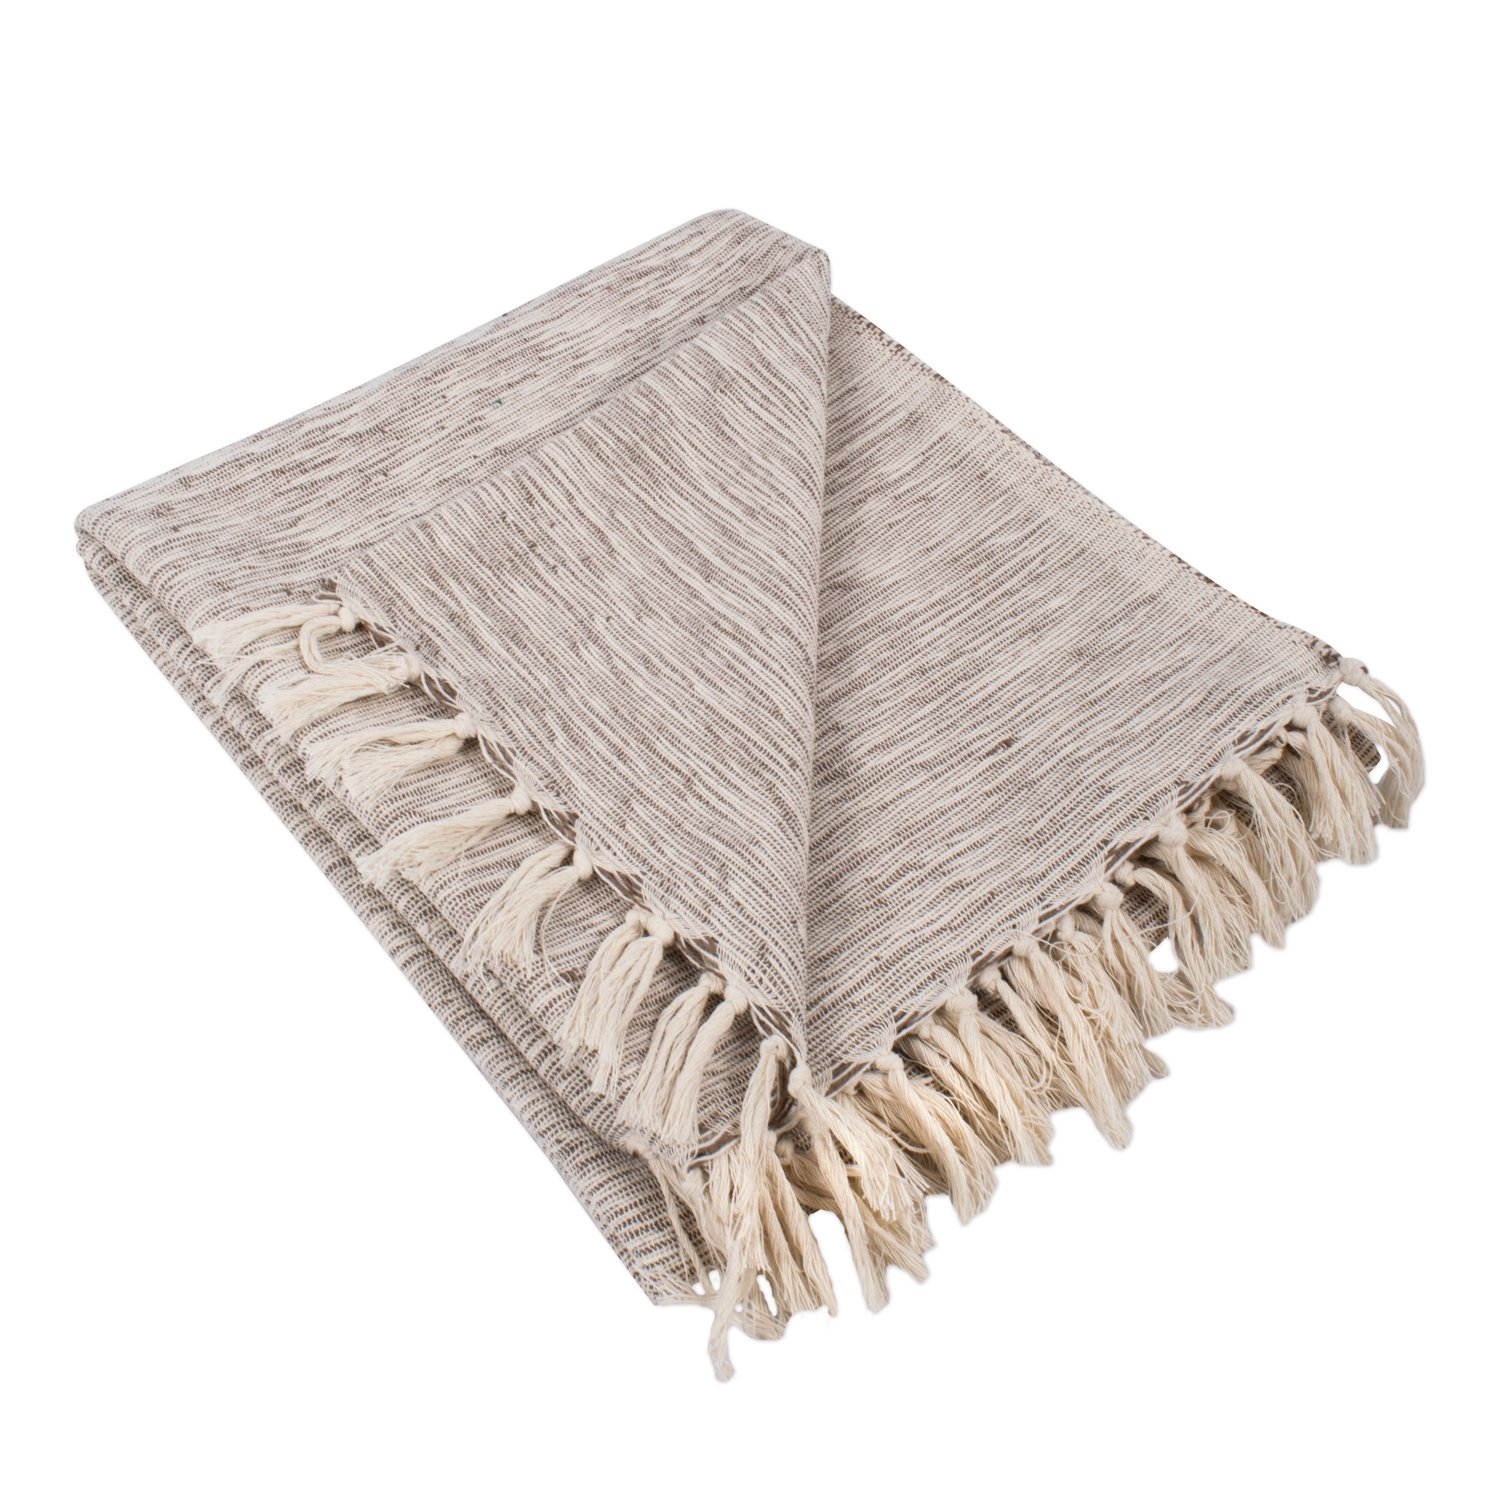 DII Rustic Farmhouse Cotton Variegated Blanket Throw for Chair, Couch, Picnic, Camping, Beach, Everyday Use, 50 x 60 - Variegated Brown